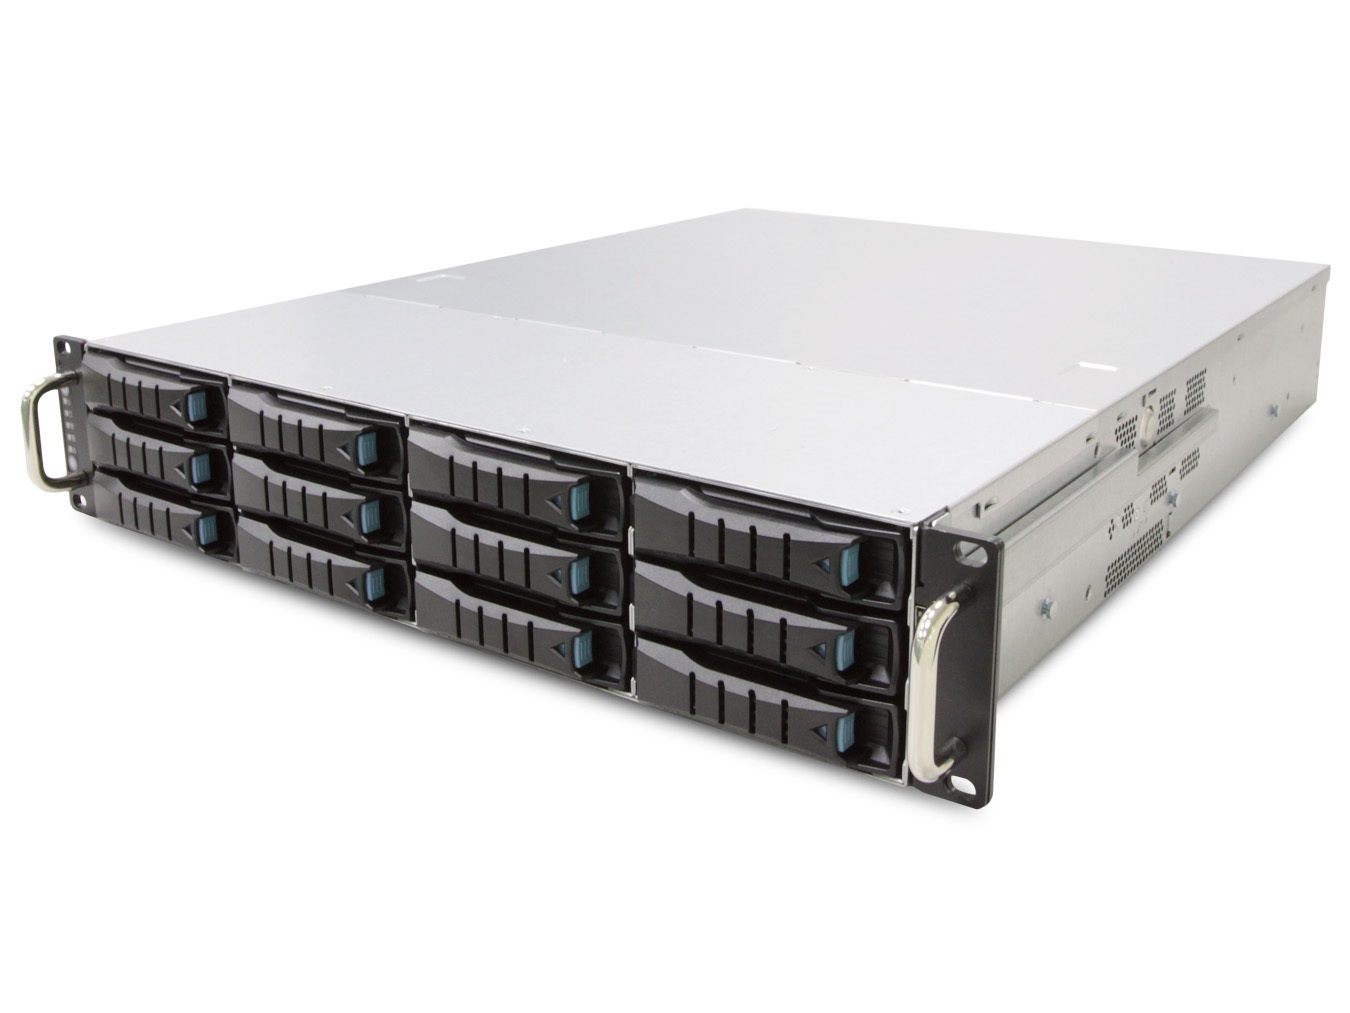 AIC RSC-2ETS XE1-2ETS0-02 2U 12-bay Storage Server Chassis